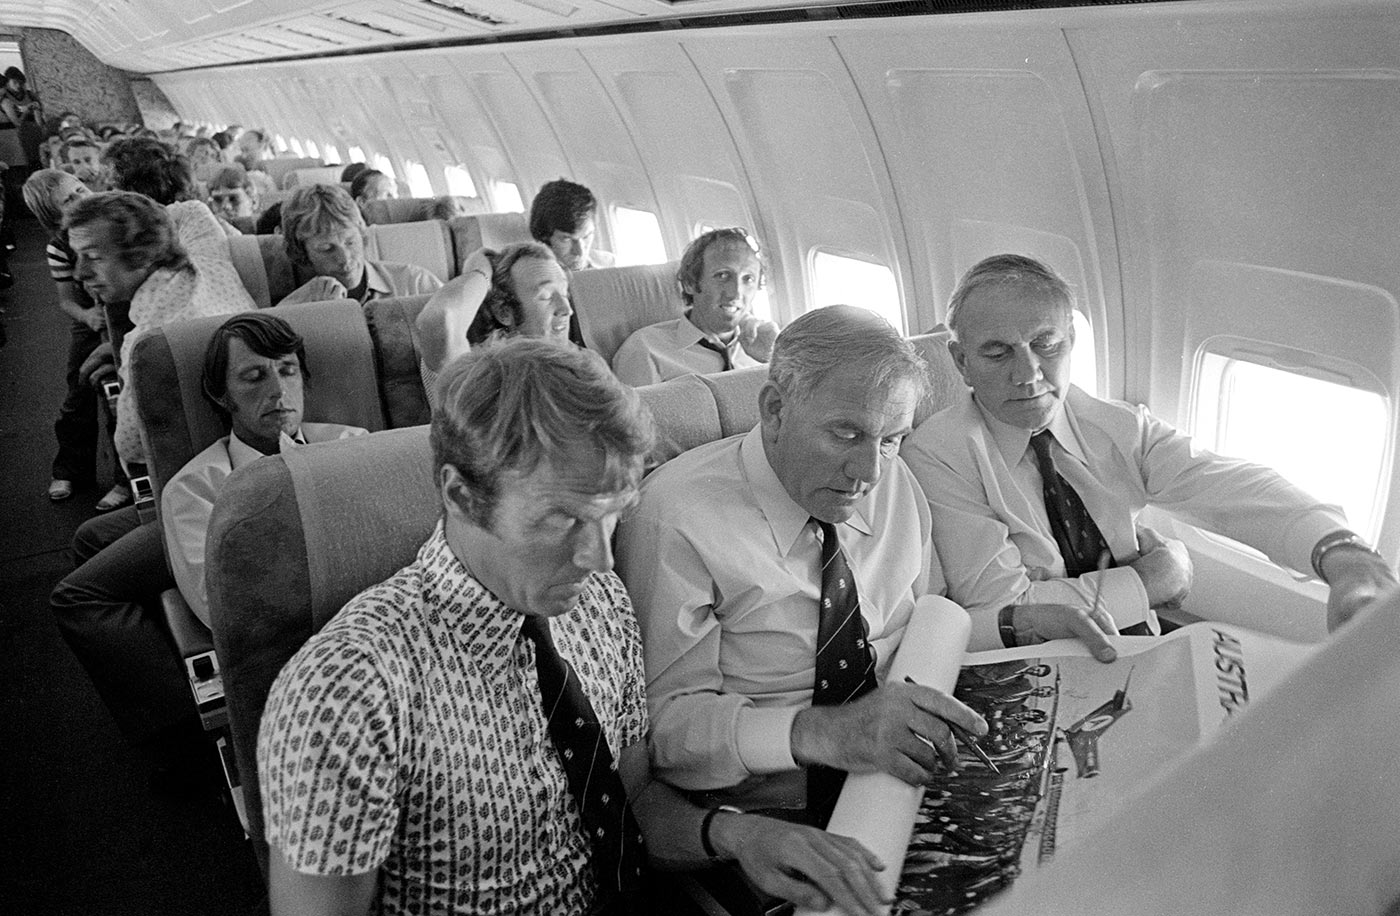 Who we gonna call? England's tour think tank, Alan Smith and Alec and Eric Bedser (from left), on the plane to Adelaide after the Perth Test